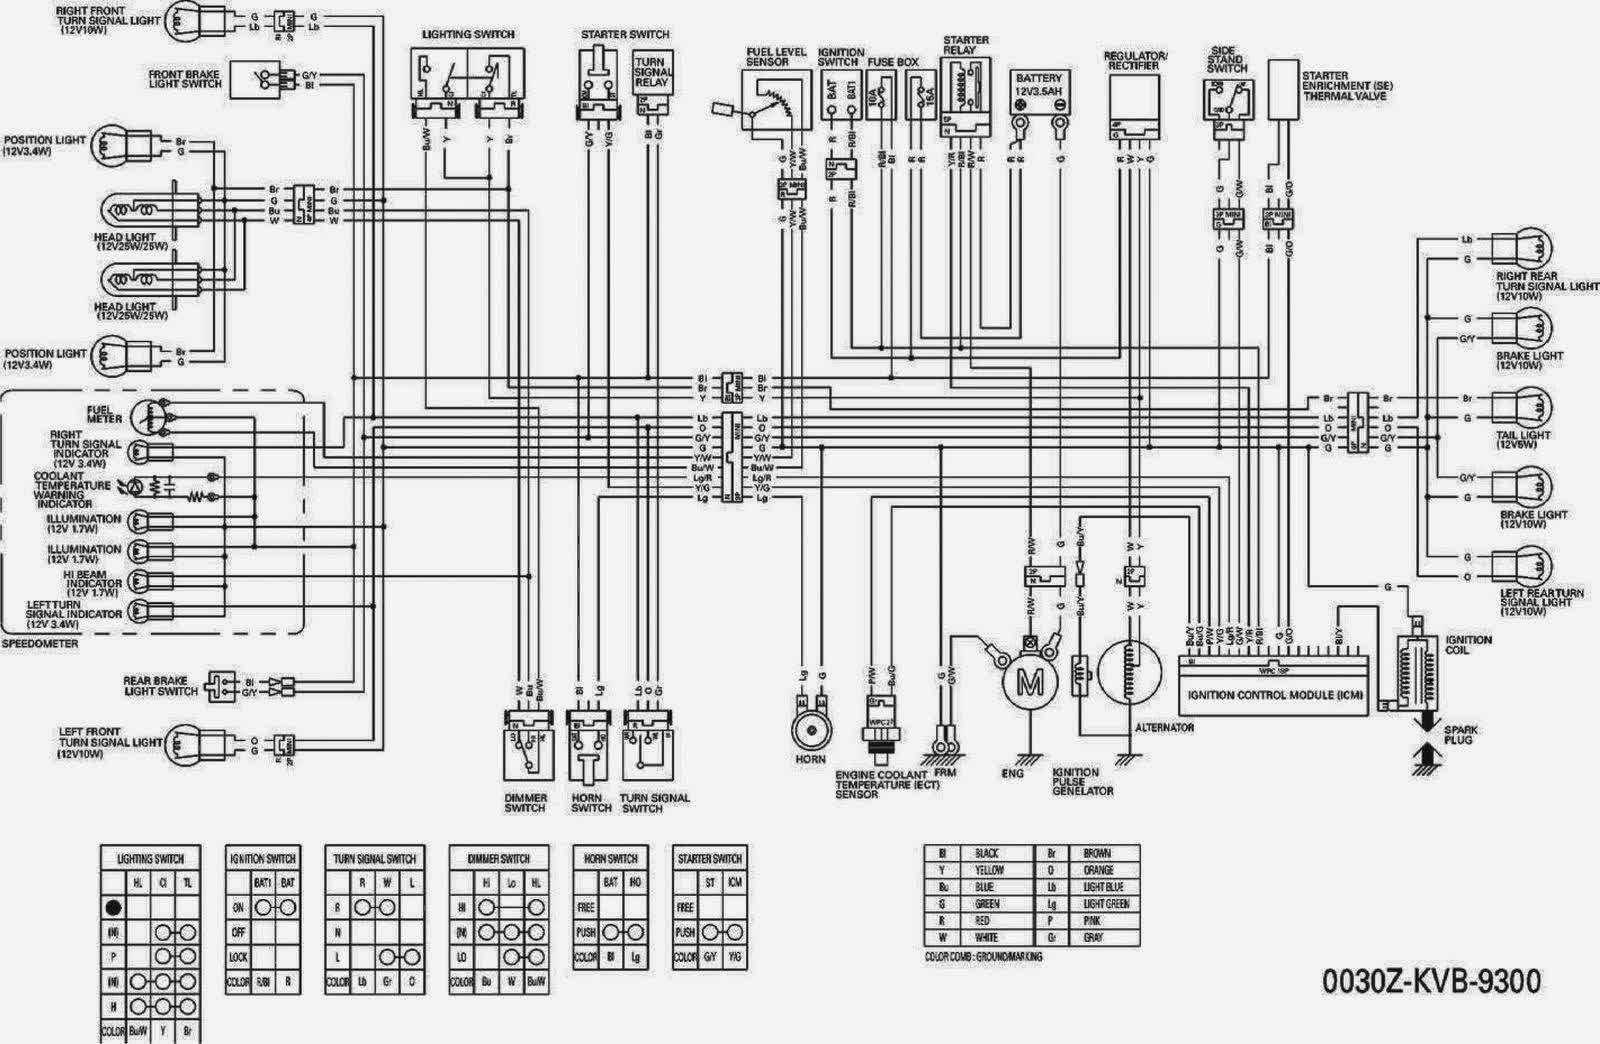 Schematic For A Suzuki Quad